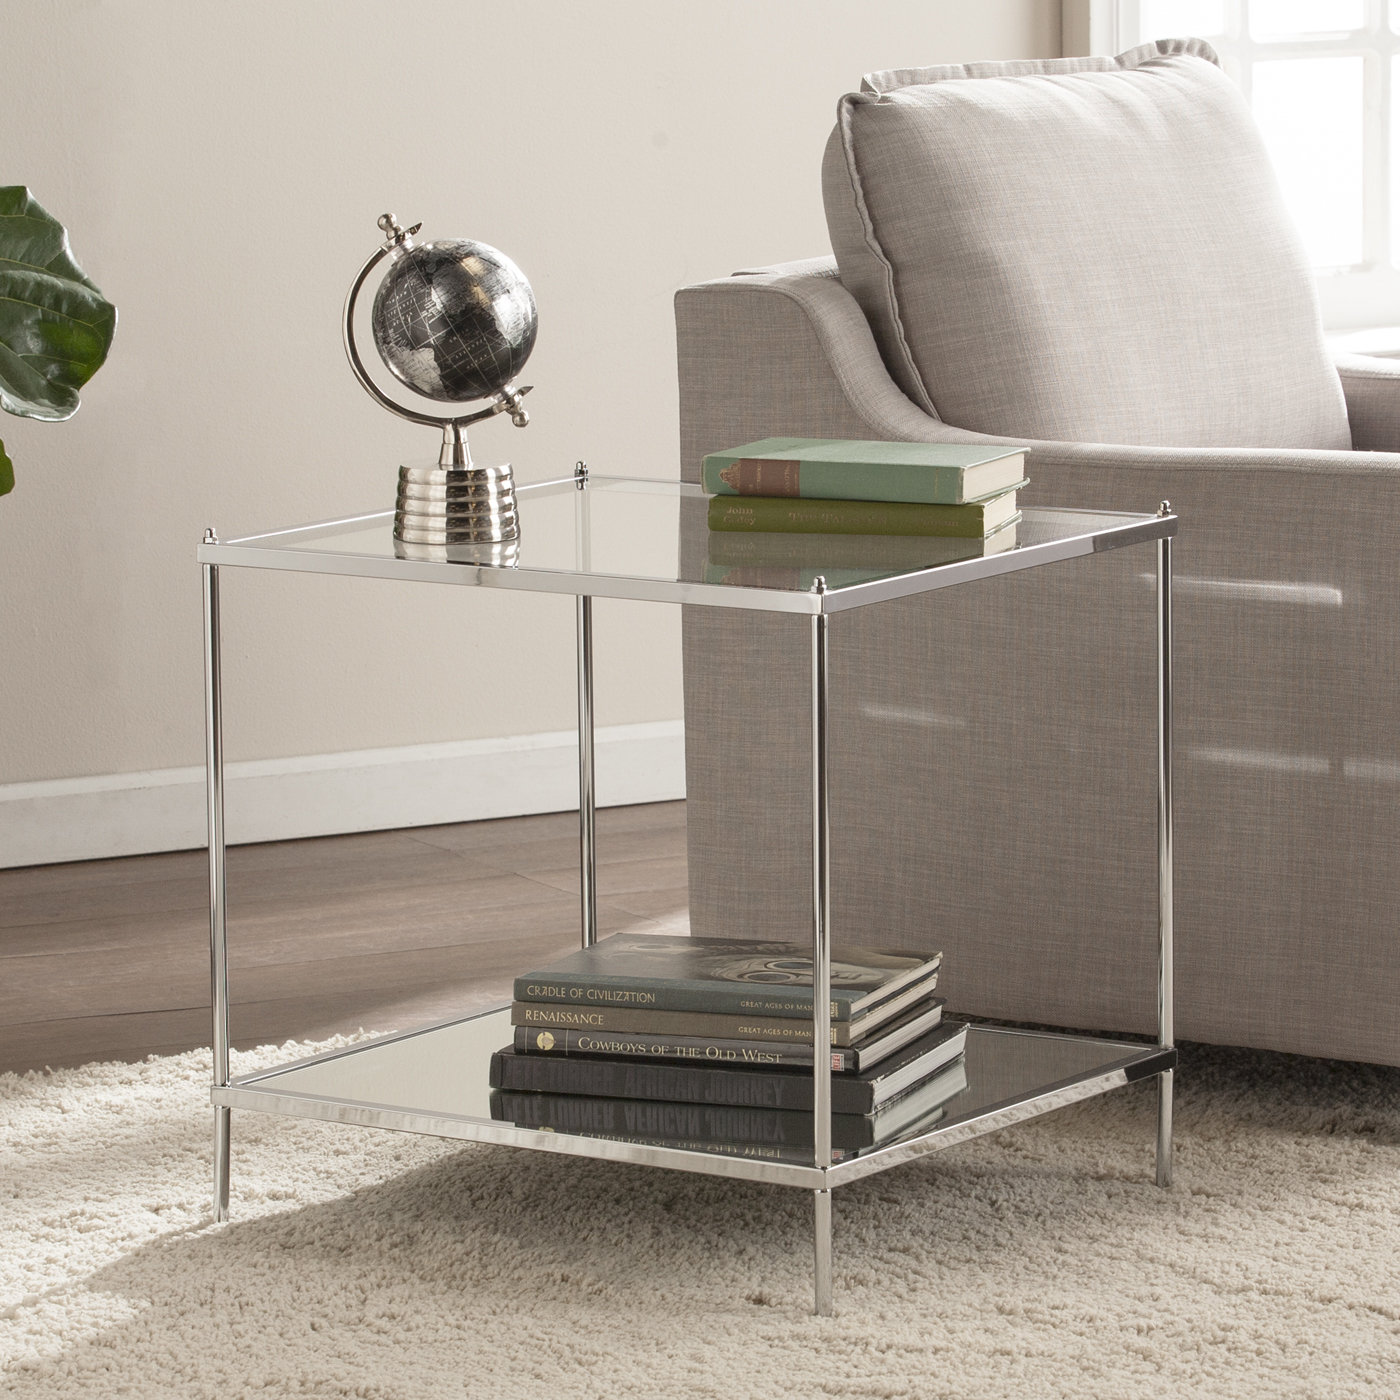 end table with bottom shelf busey glam mirrored room essentials mixed material accent door console cabinet country tablecloths blue mosaic patio convertible modern floor lamp